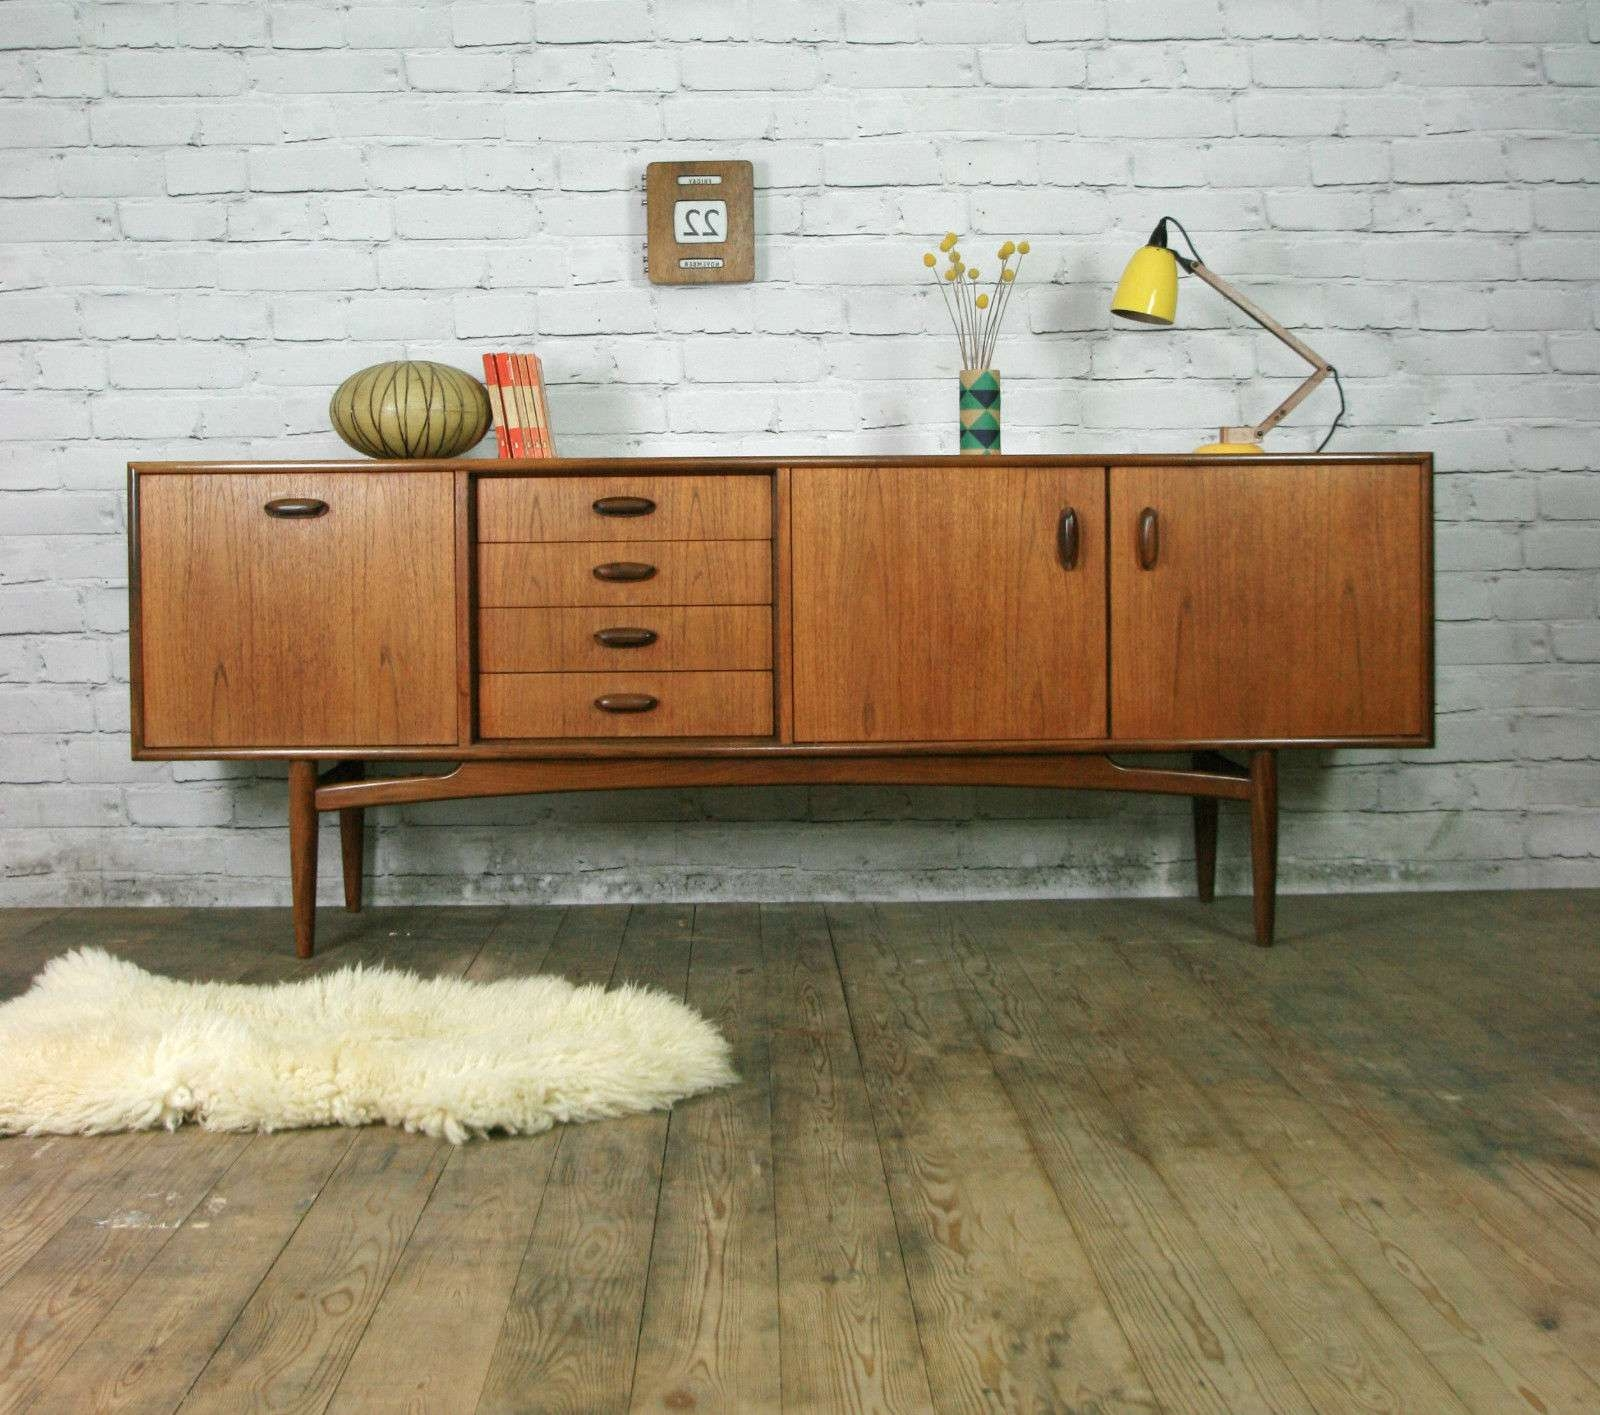 Retro Scandinavian Chair, Vintage Sideboards And Buffets Ideas Within Danish Retro Sideboards (View 20 of 20)